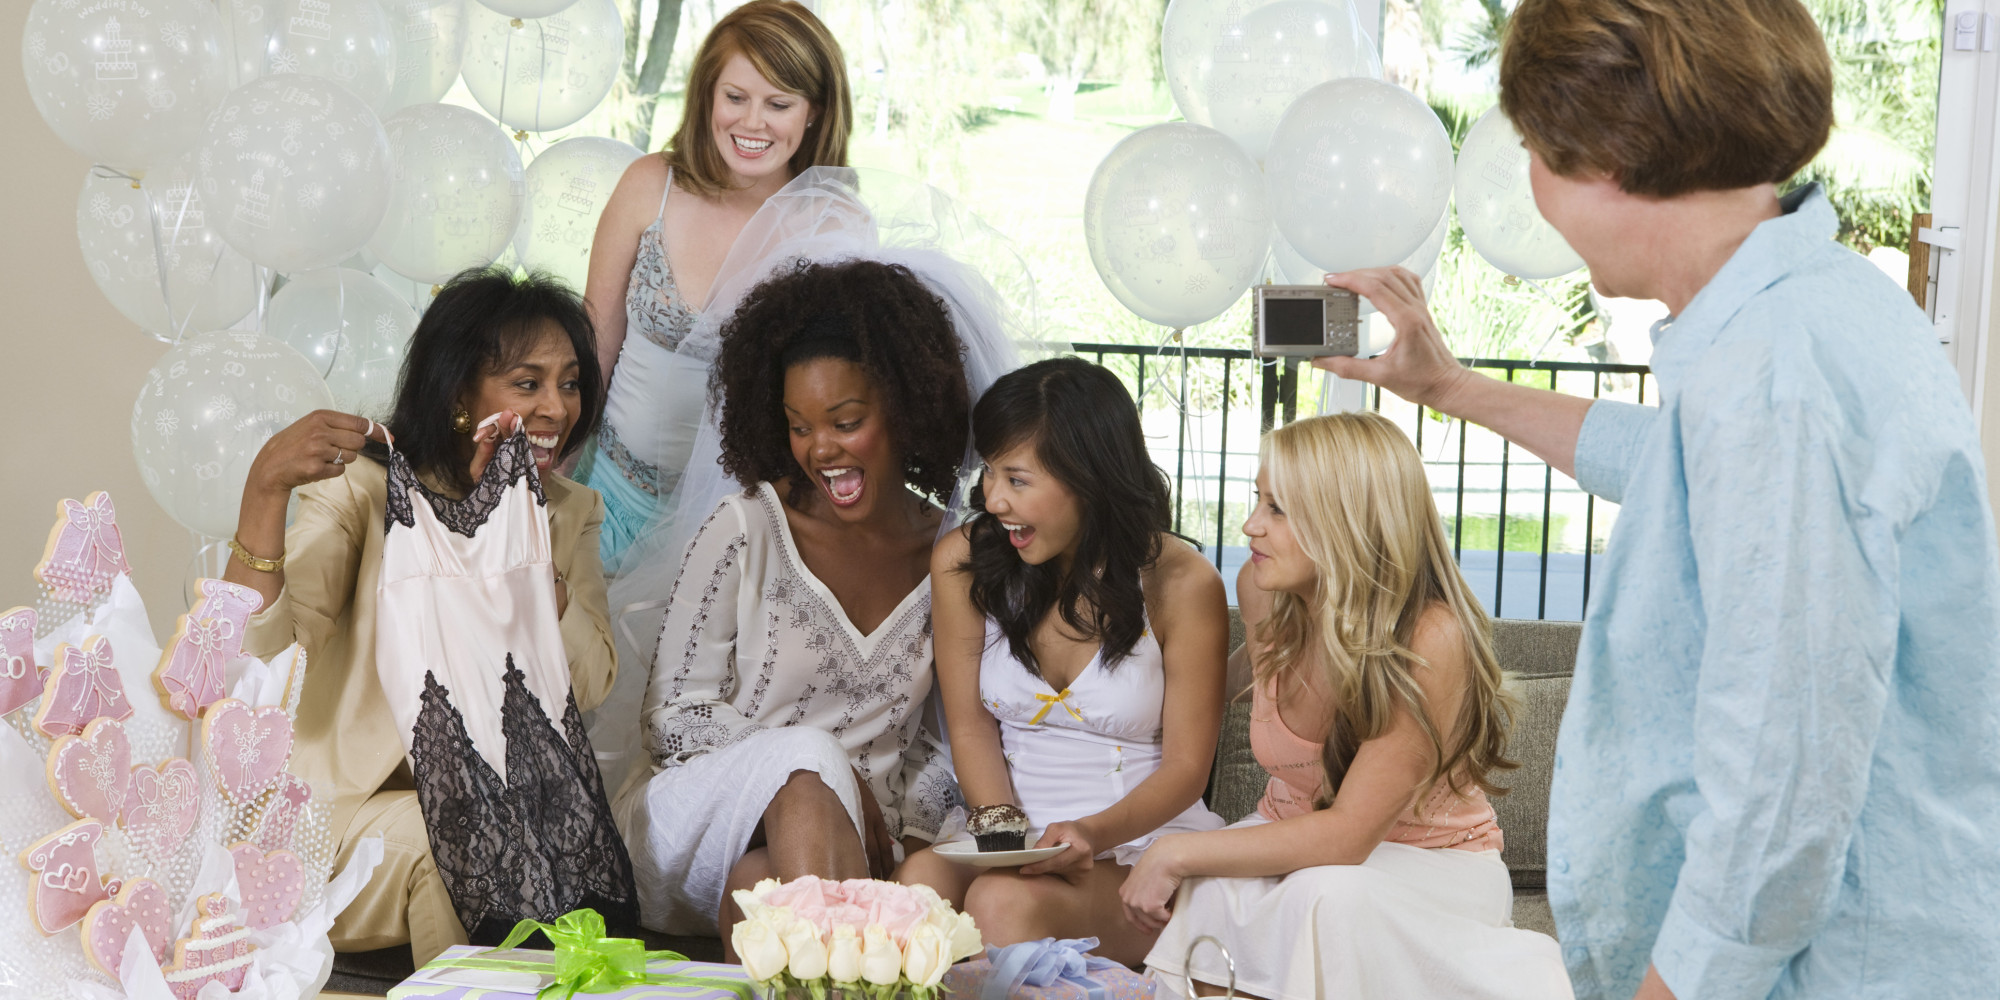 Who Should Be Invited to a Bridal Shower? | HuffPost